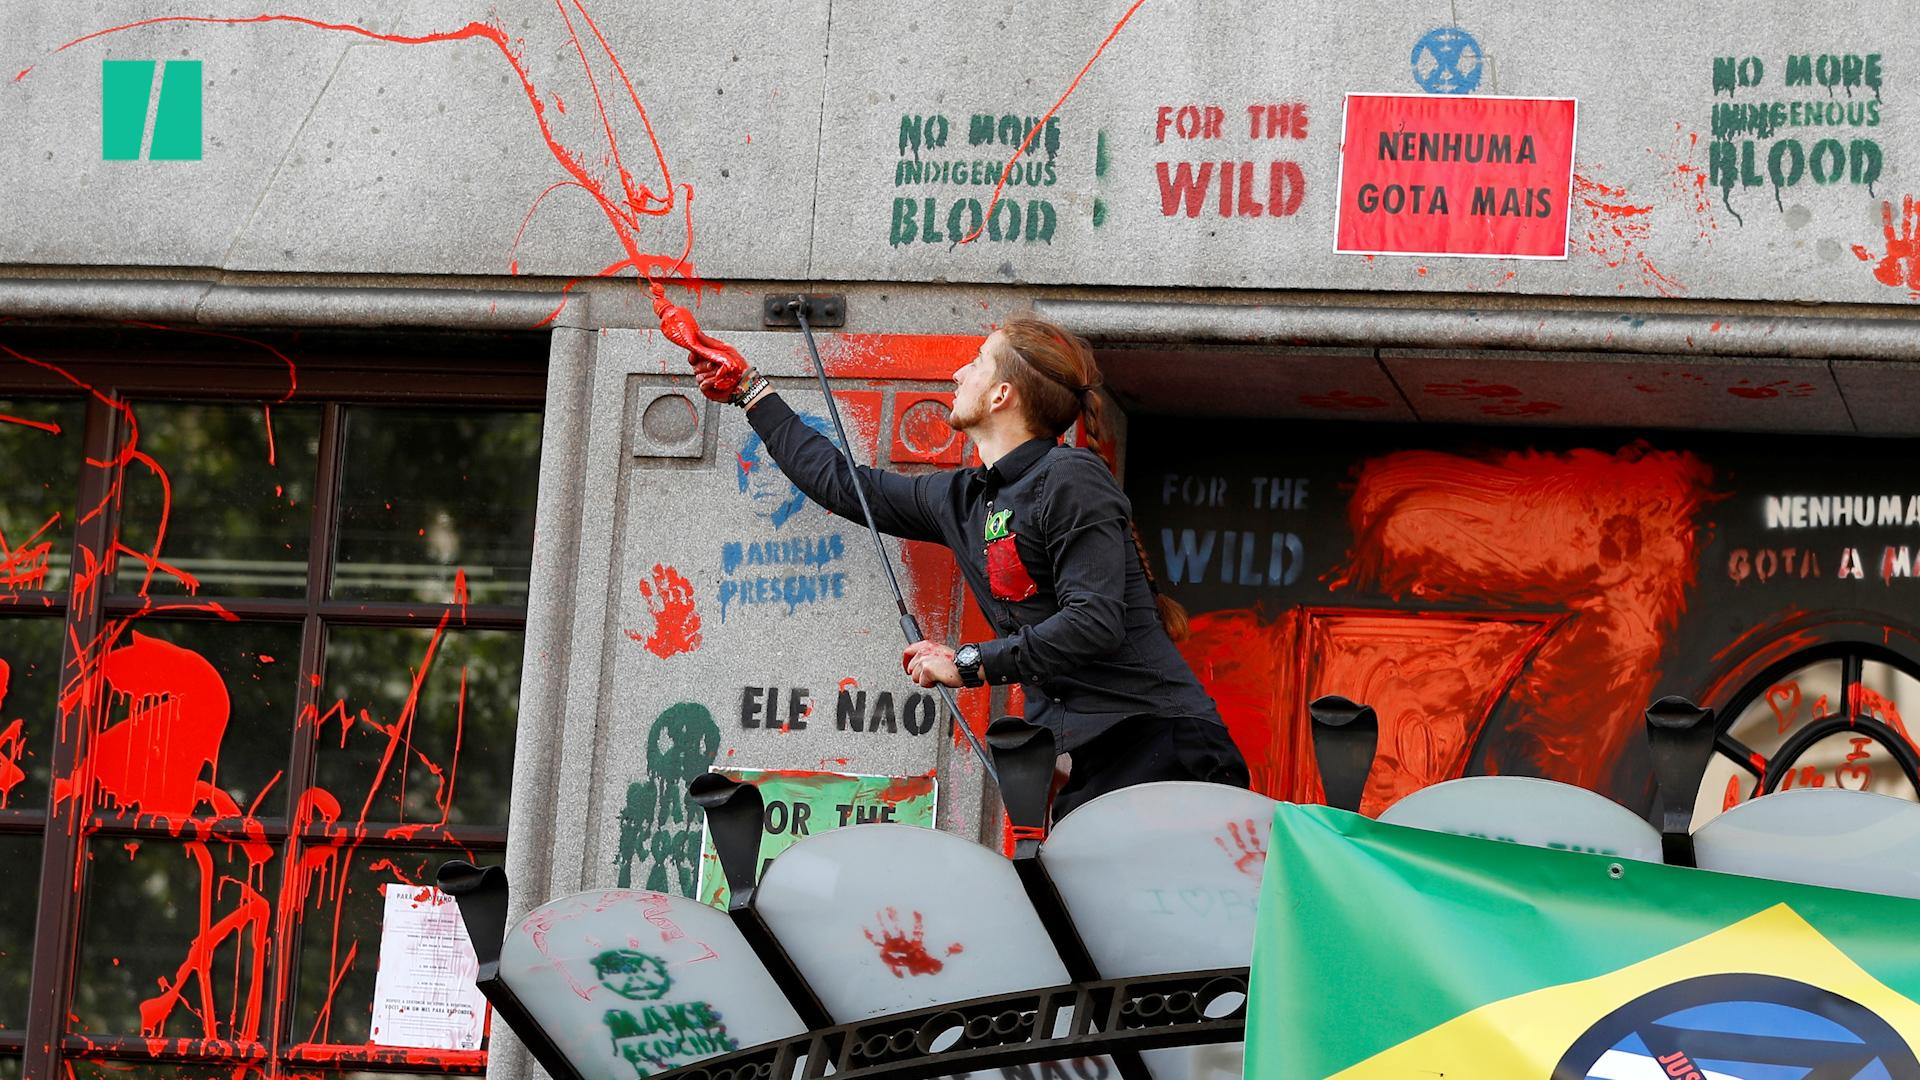 Protests at the Brazilian embassy